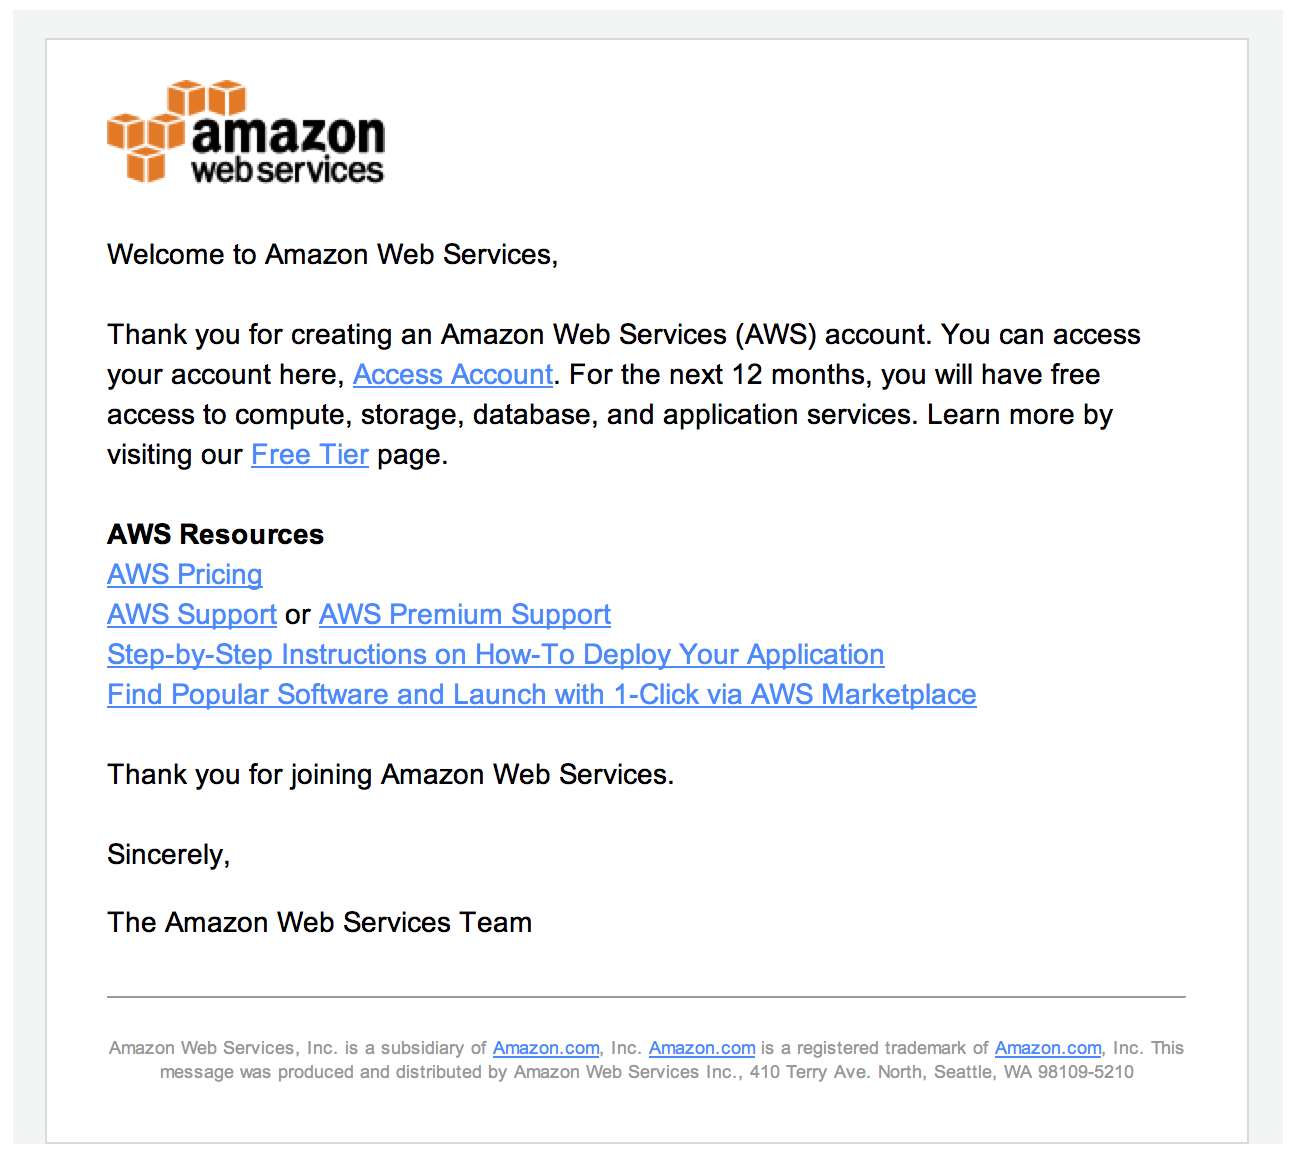 AmazonWebServices_09_Confirmation_email.png